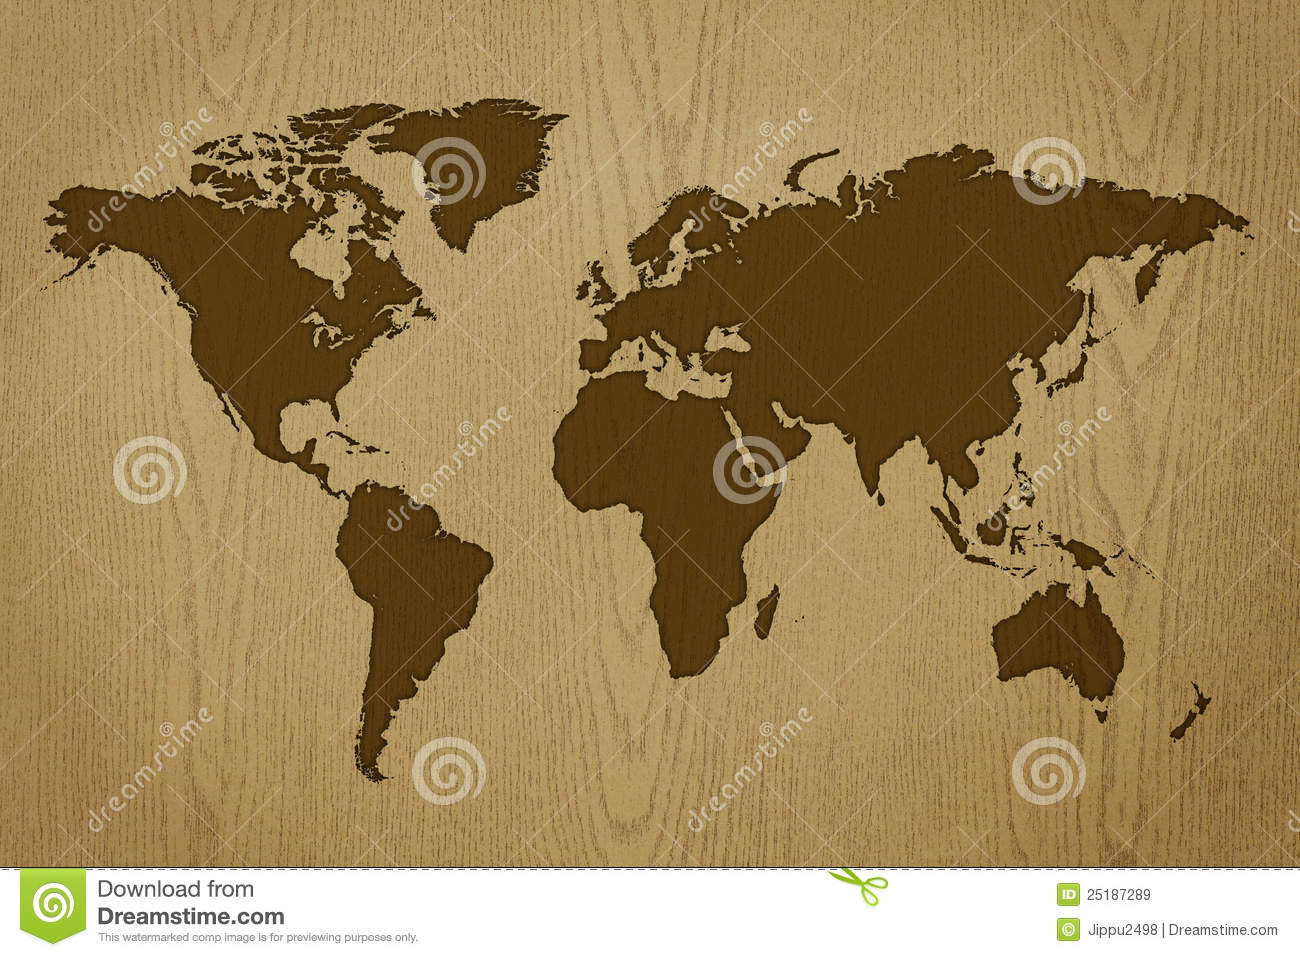 Wood world map vintage artwork stock illustration illustration of world map on wood texture royalty free stock images gumiabroncs Gallery